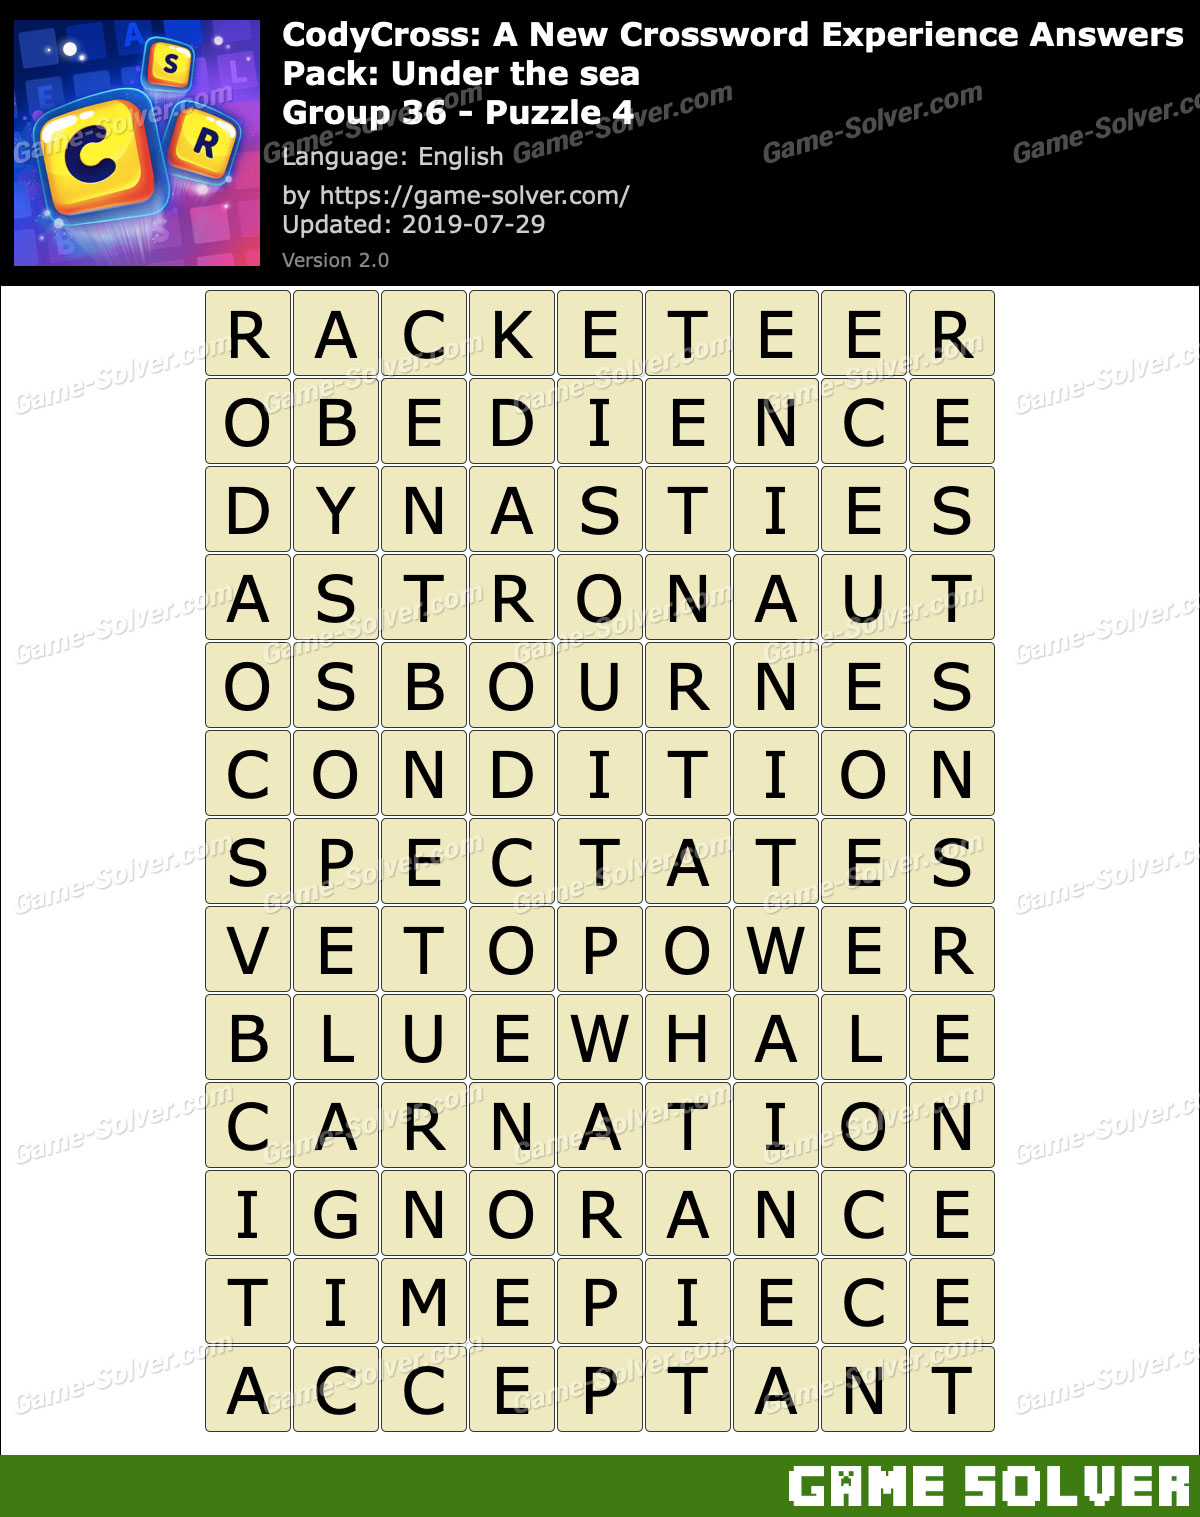 CodyCross Under the sea Group 36-Puzzle 4 Answers